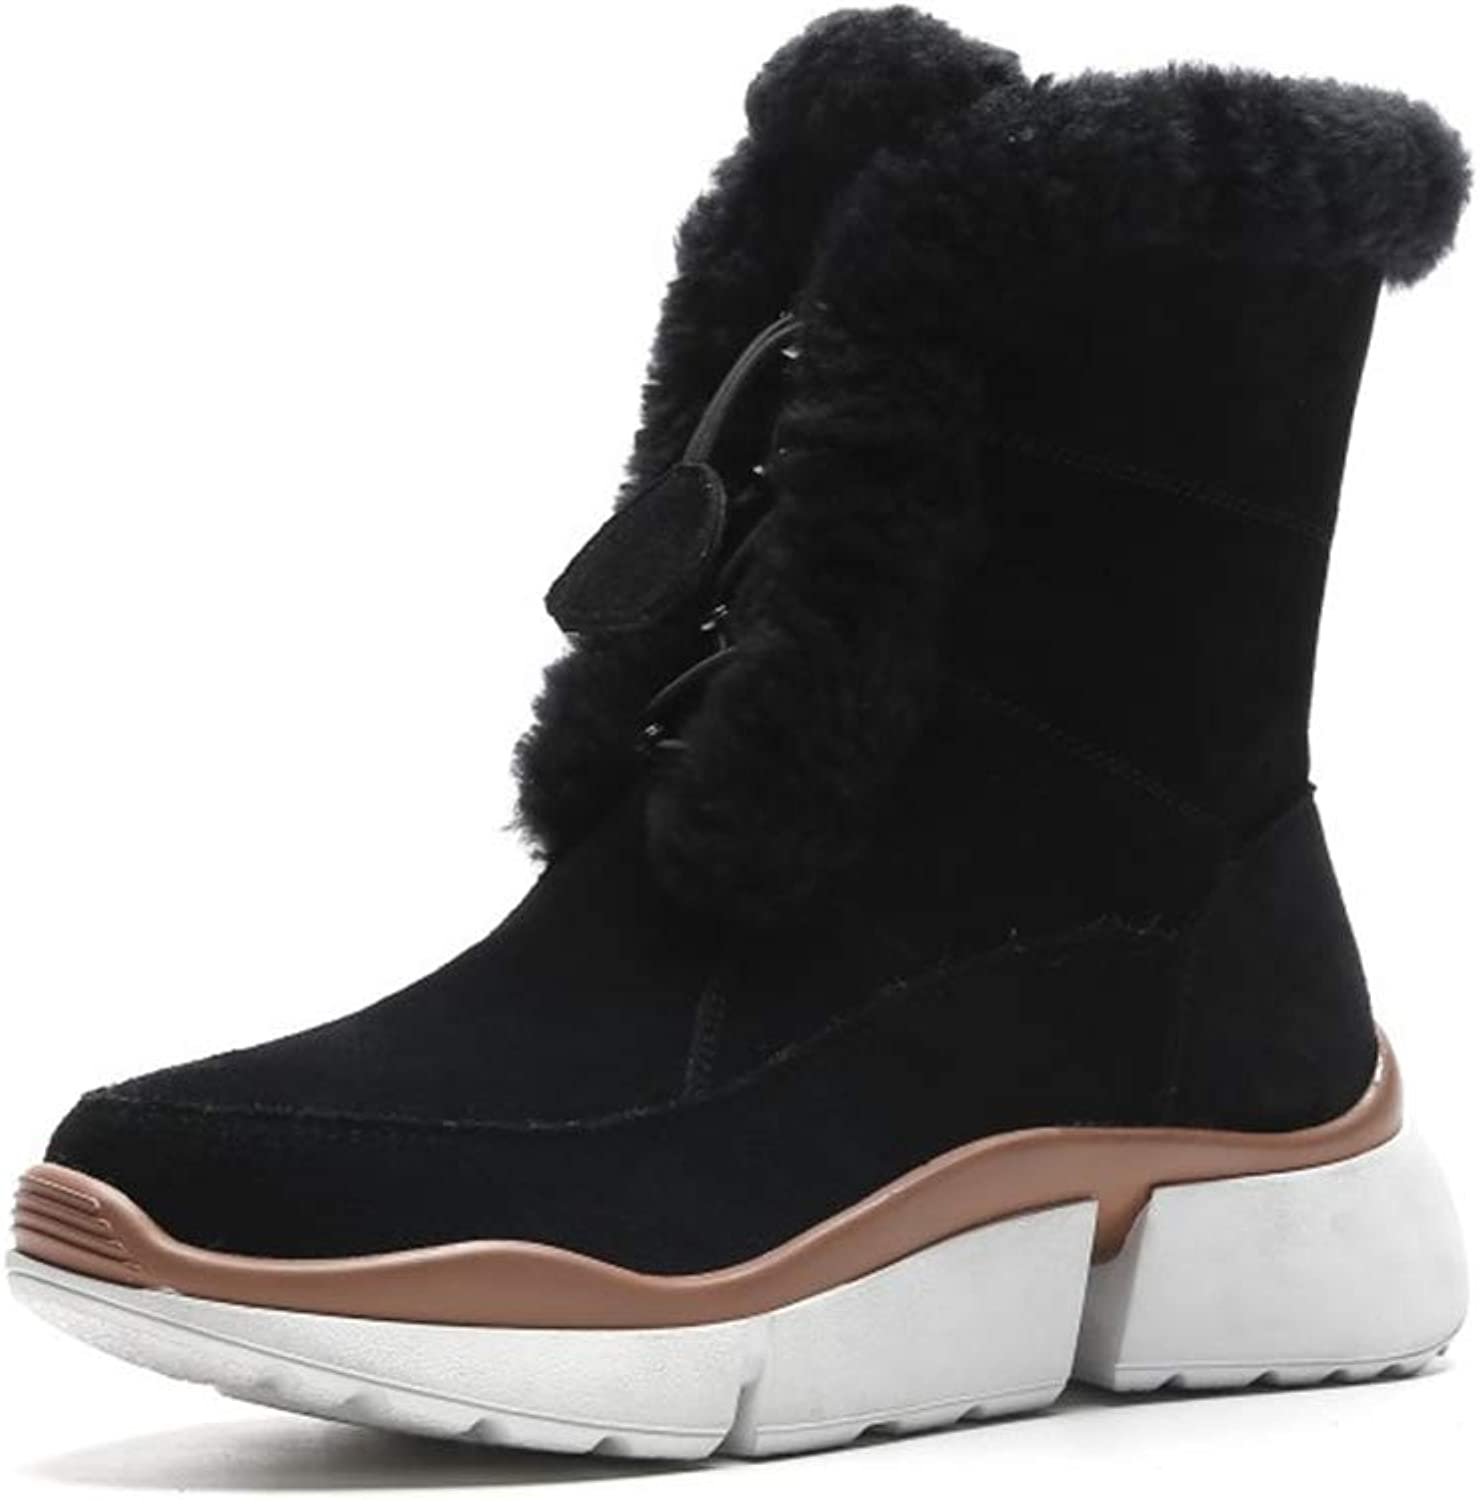 Women's Boots Suede Winter Non-Slip Snow Boots Flat with Platform shoes Warm Booties Outdoor Casual Walking shoes Black Pink (color   Black, Size   40)